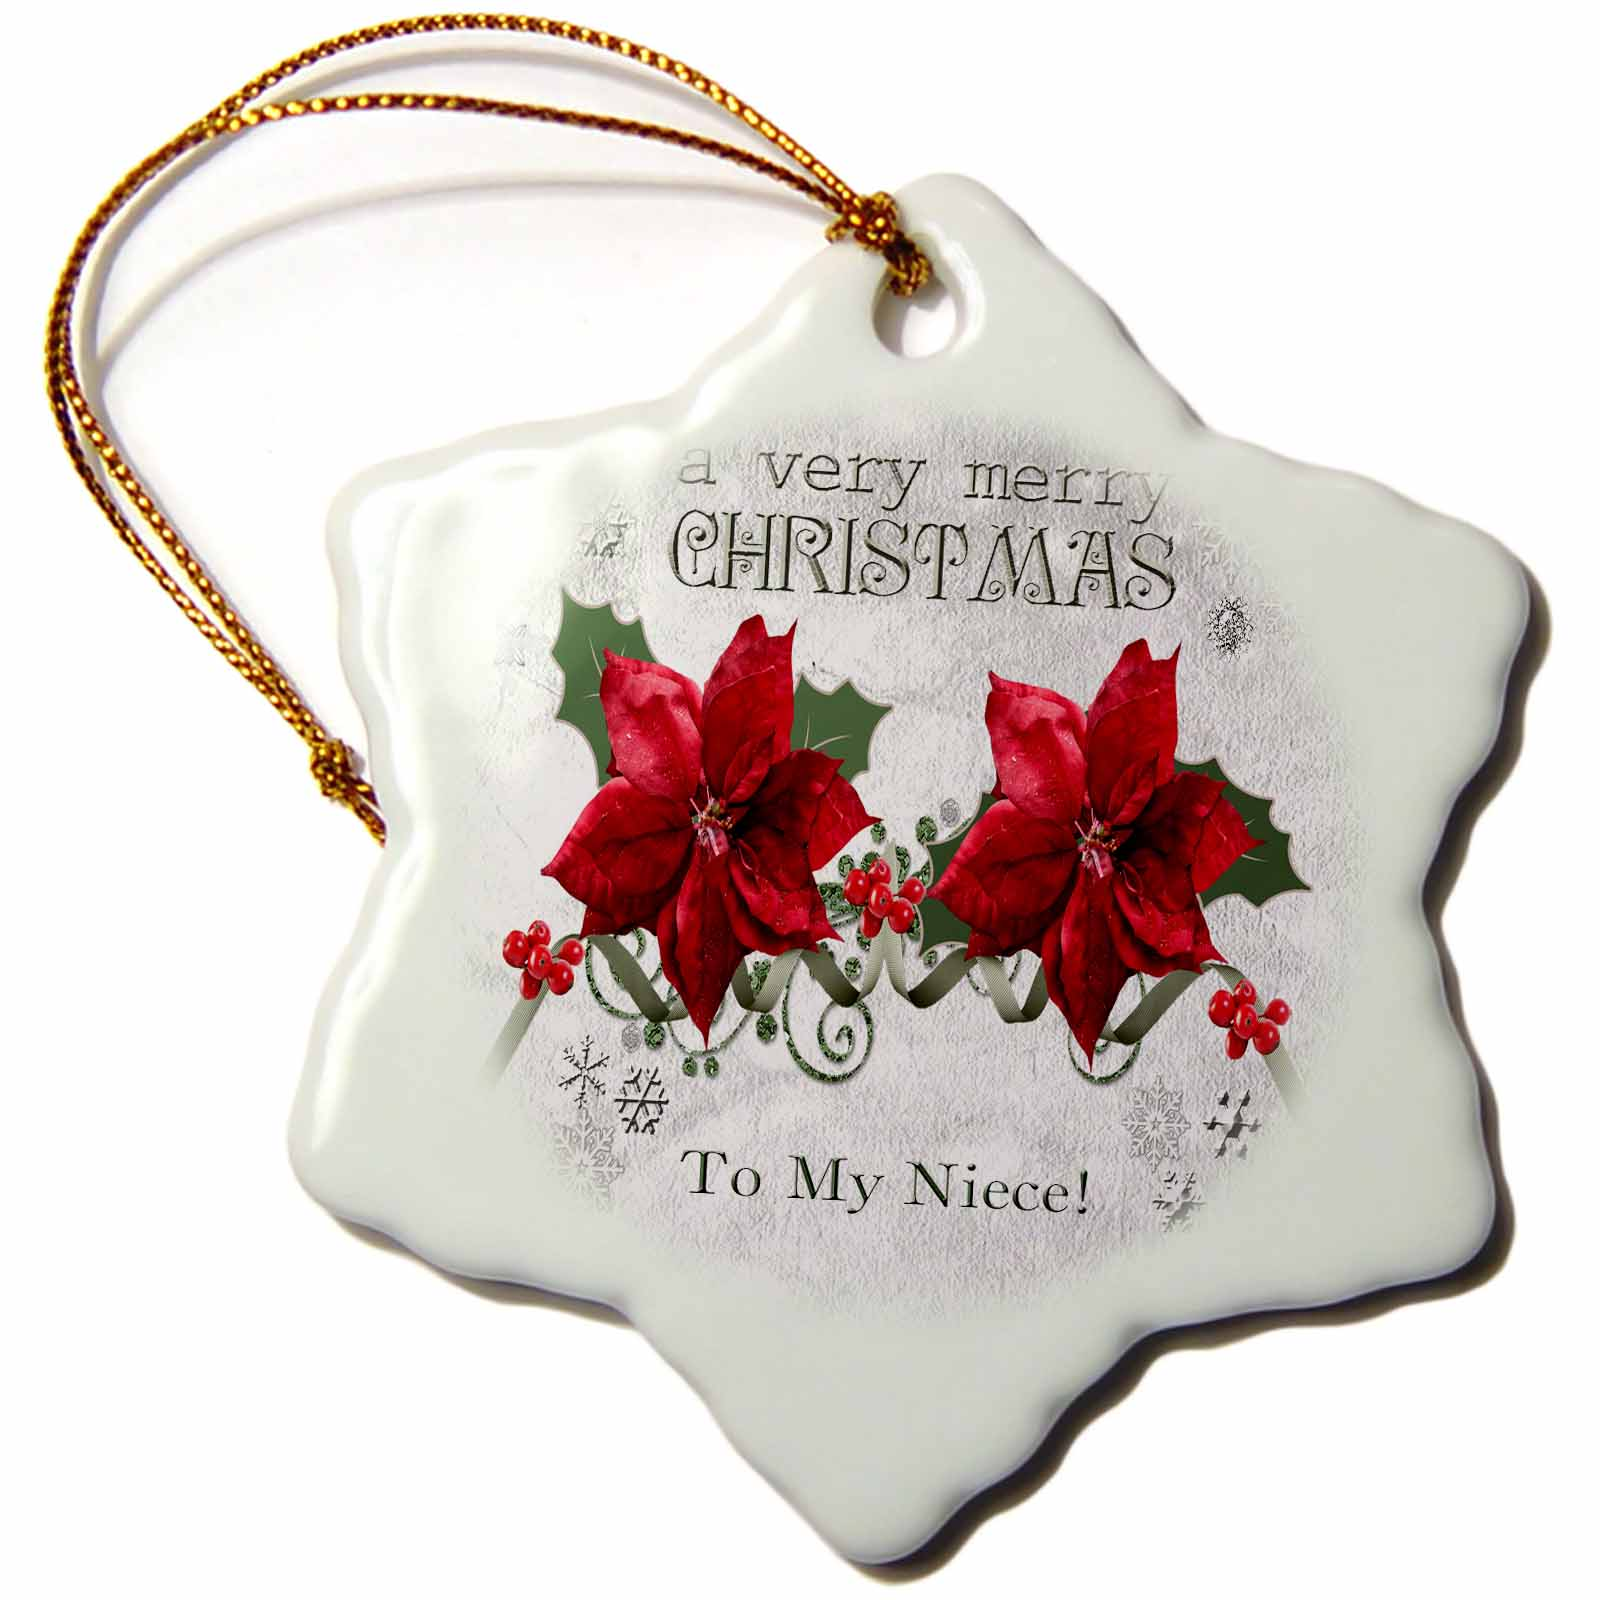 3dRose Berries and Poinsettias, a very merry Christmas, To My Niece, Snowflake Ornament, Porcelain, 3-inch